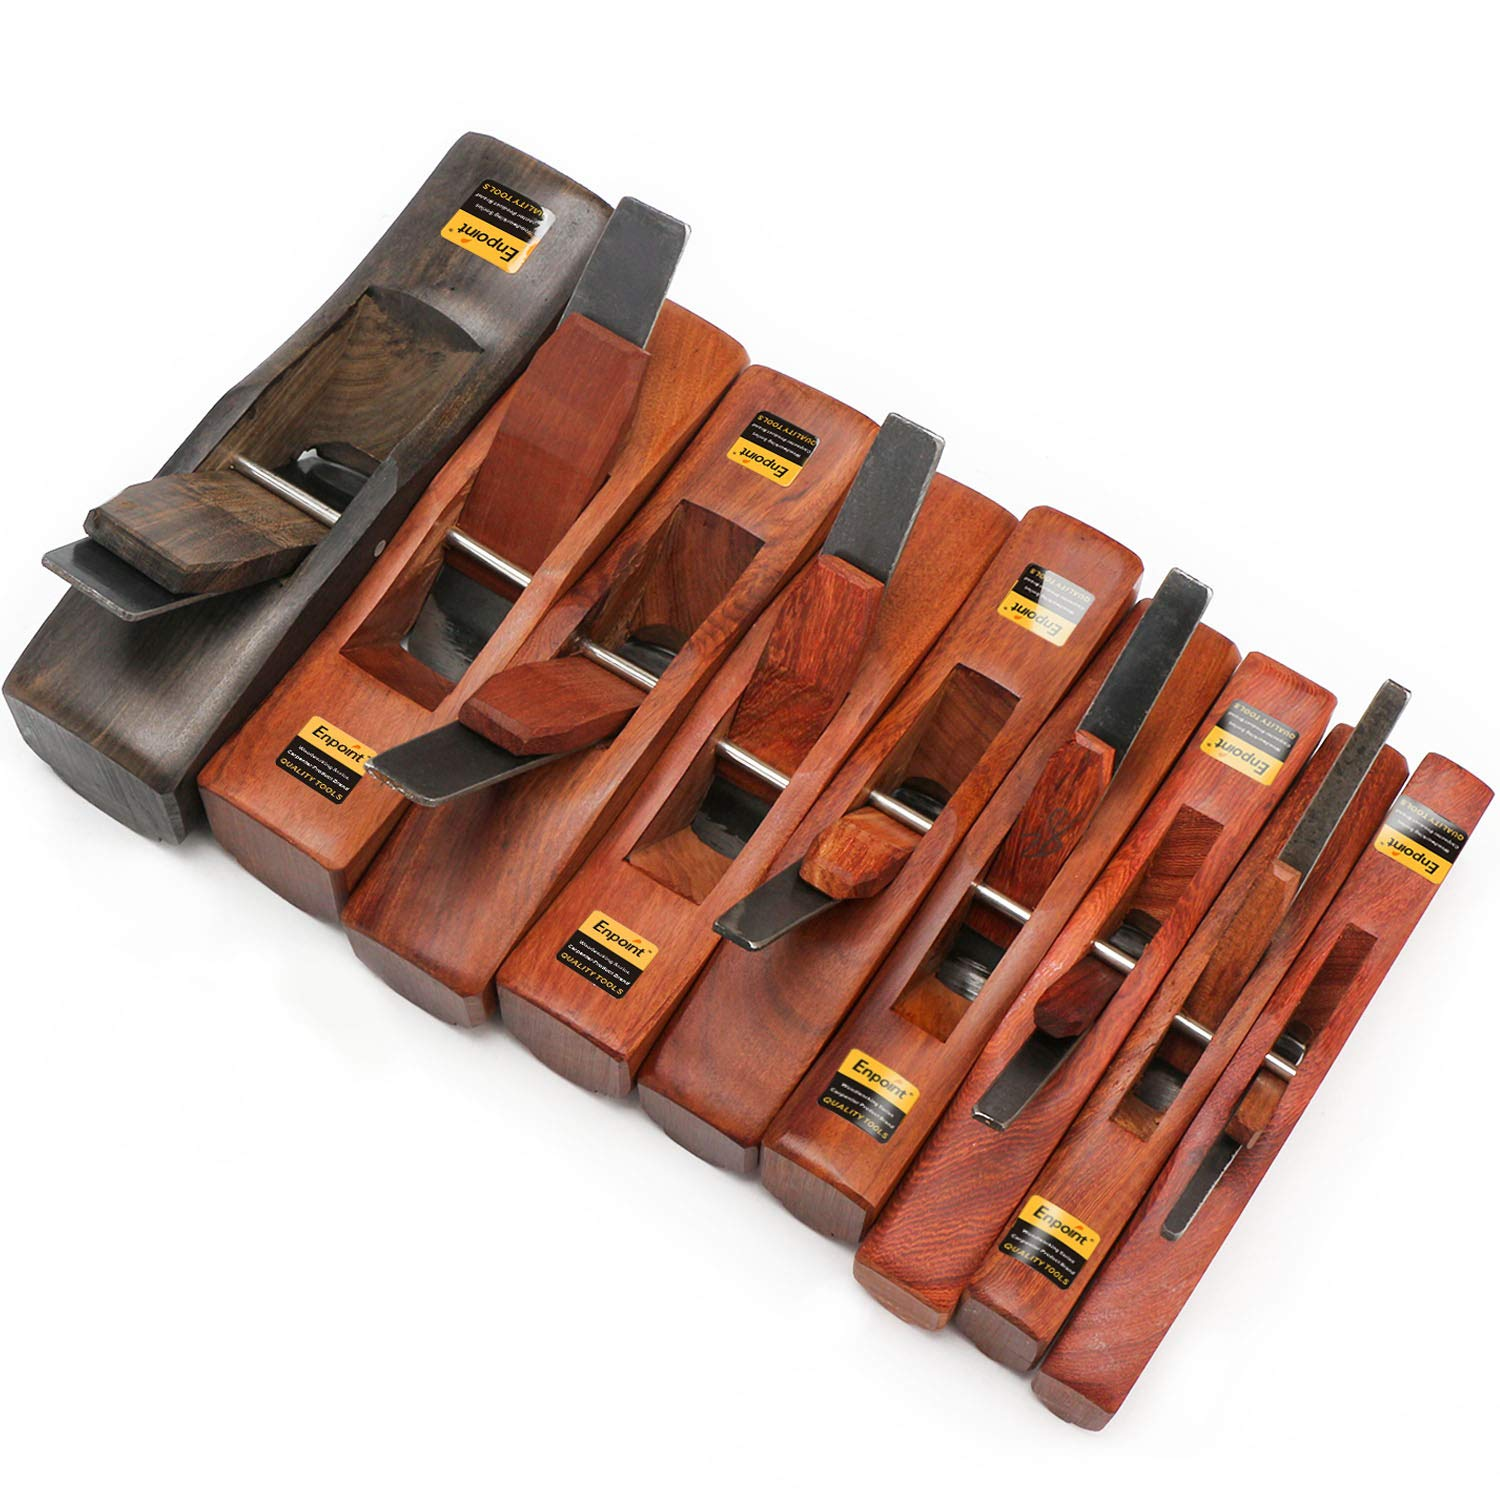 Hand Wood Plane Set, EnPoint Hand Planes Set Chamfer Plane Slot Plane Woodworking Groove Veining Planer Hand Tool with 6/8/10/13/16/19/22/25/32mm High Carbon Blade for Woodcarver Carftsman - 9PCS